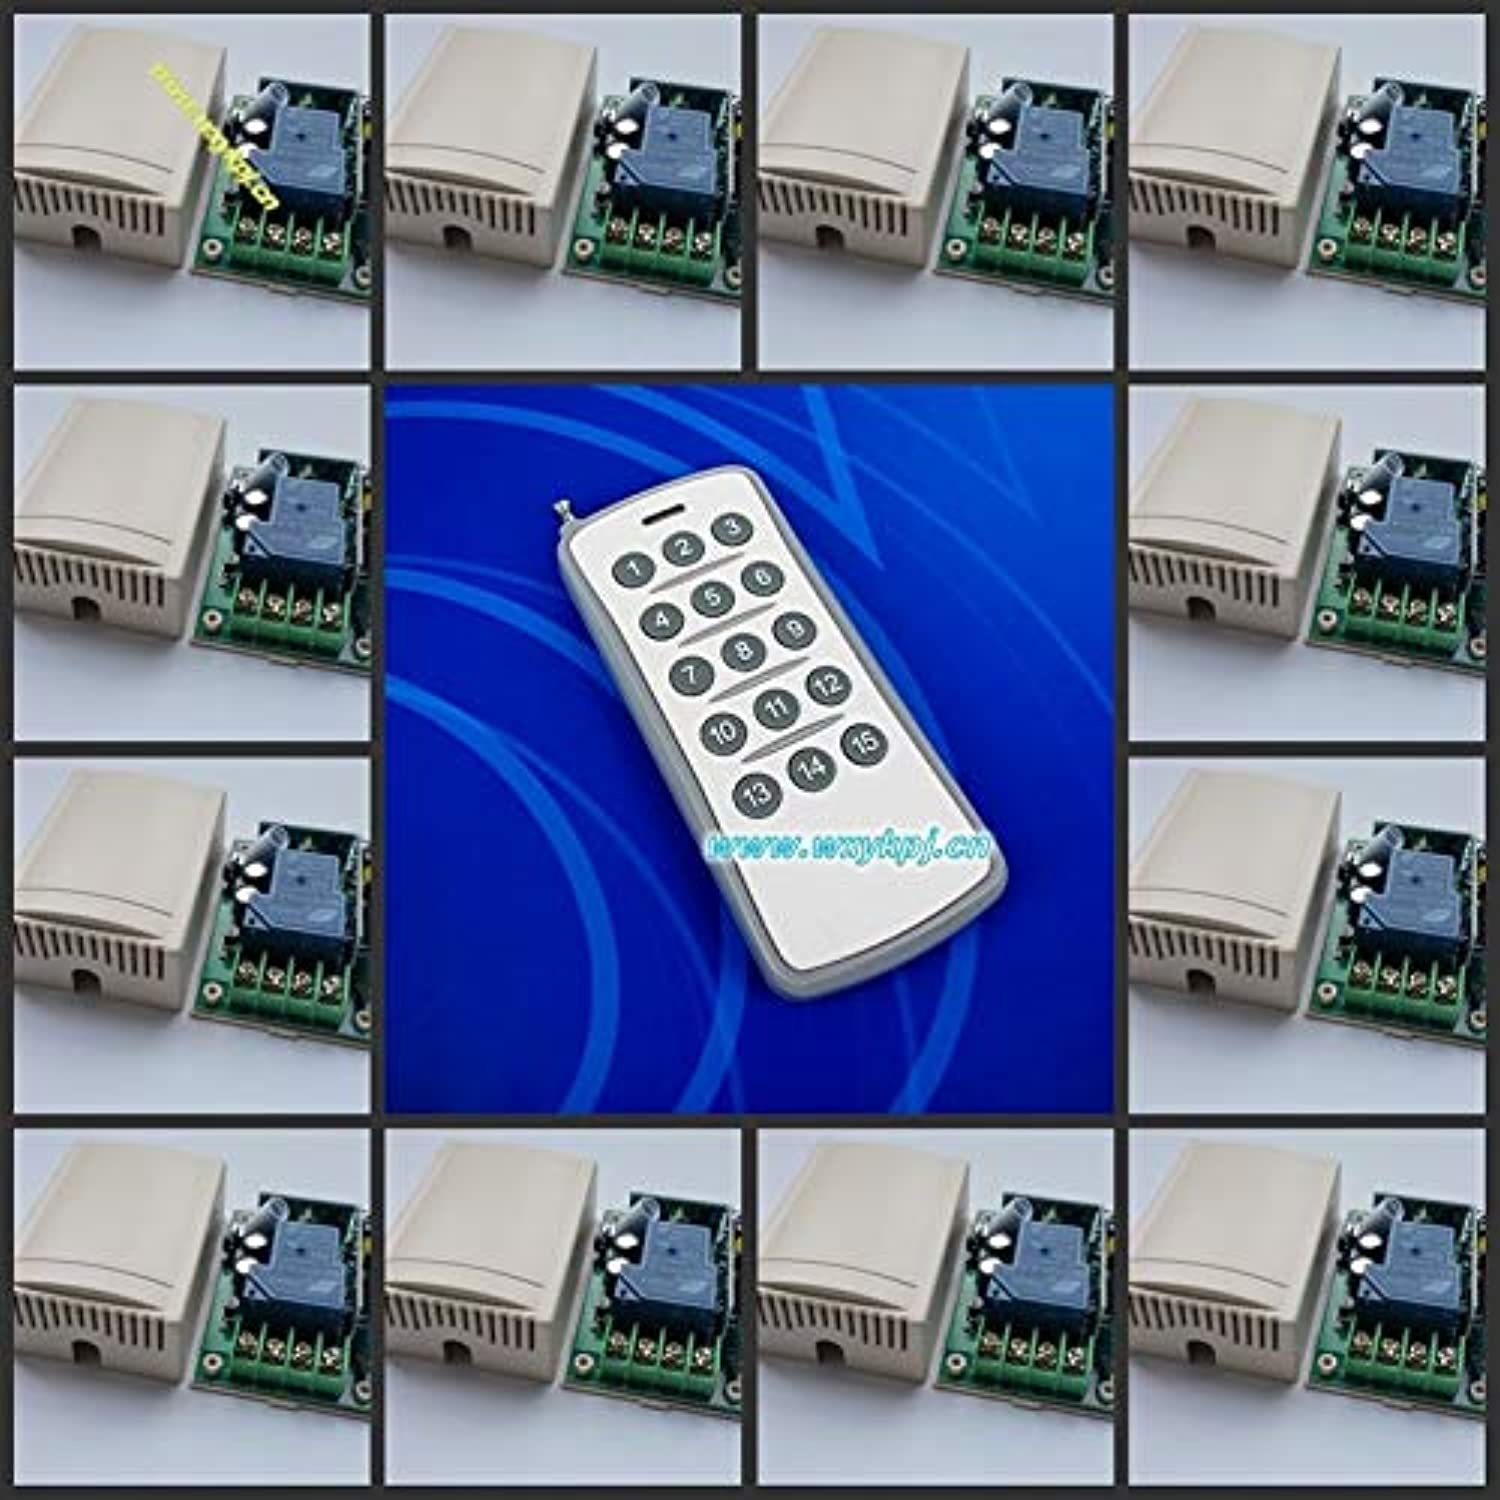 Factory Price AC220V 30A 1CH RF 3000W Wireless Remote Control System 12Receivers&1Transmitter Learning Code 315MHZ 433MHZ